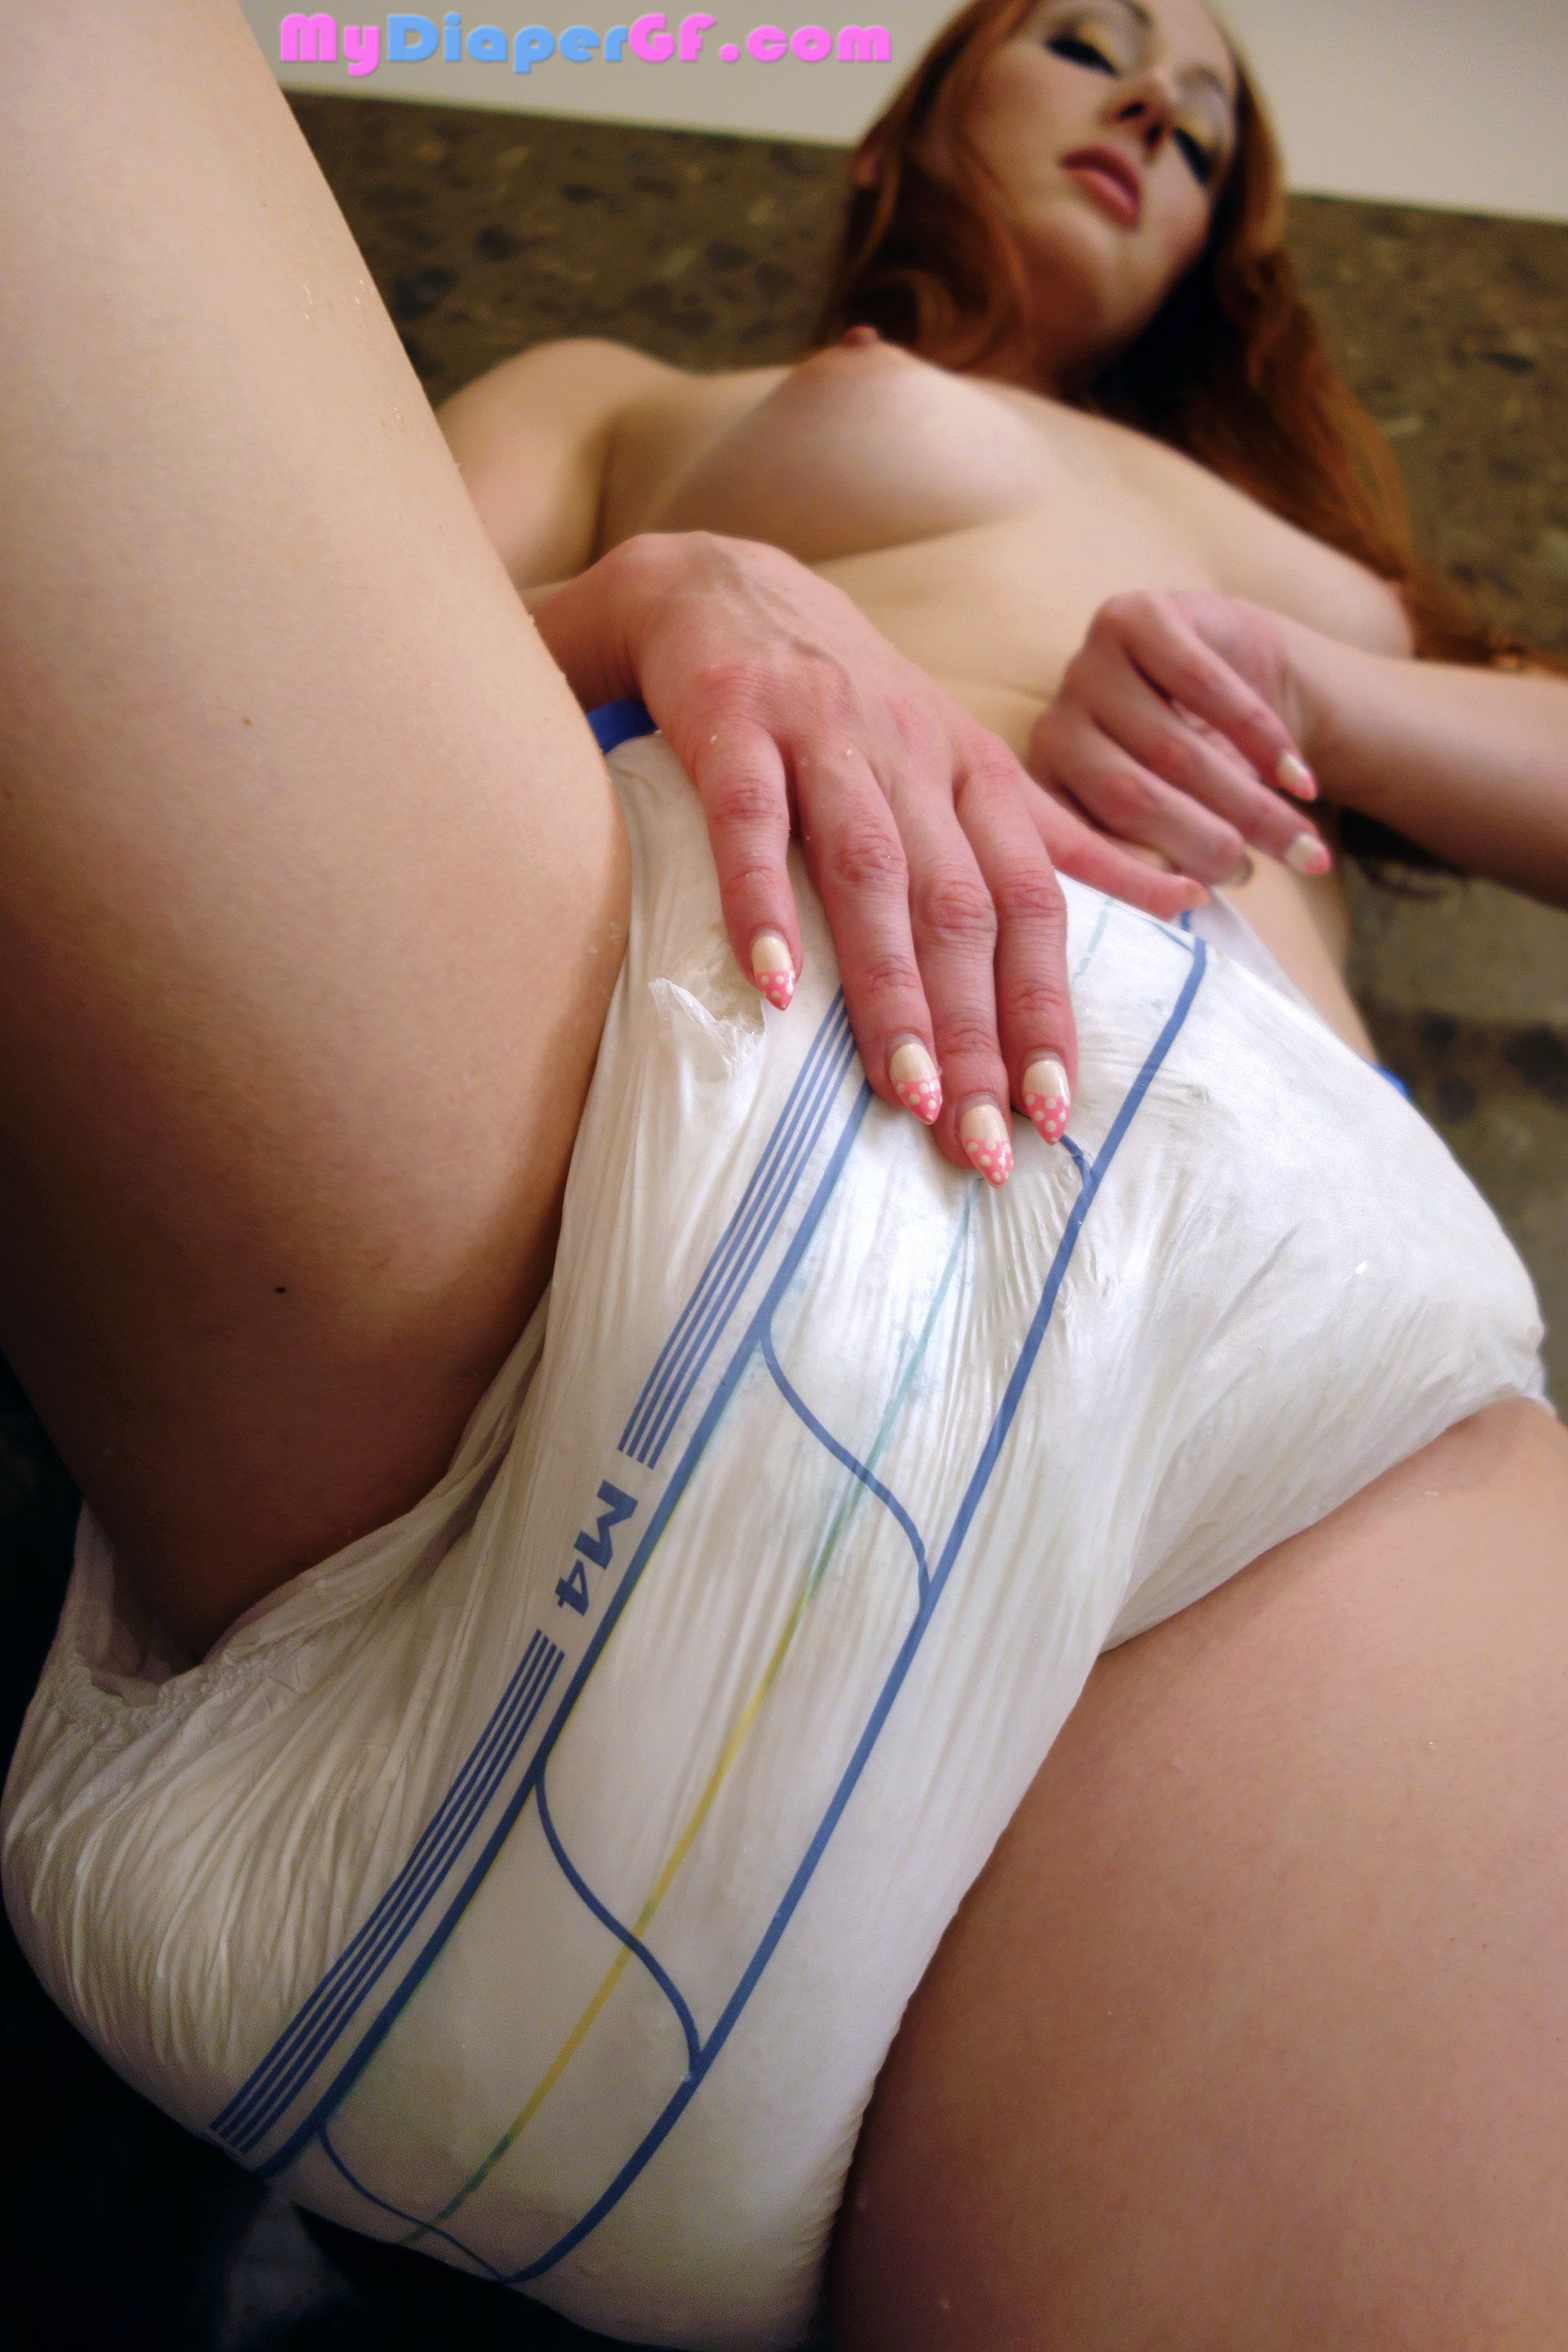 Adult milf fetish photos pics diaper